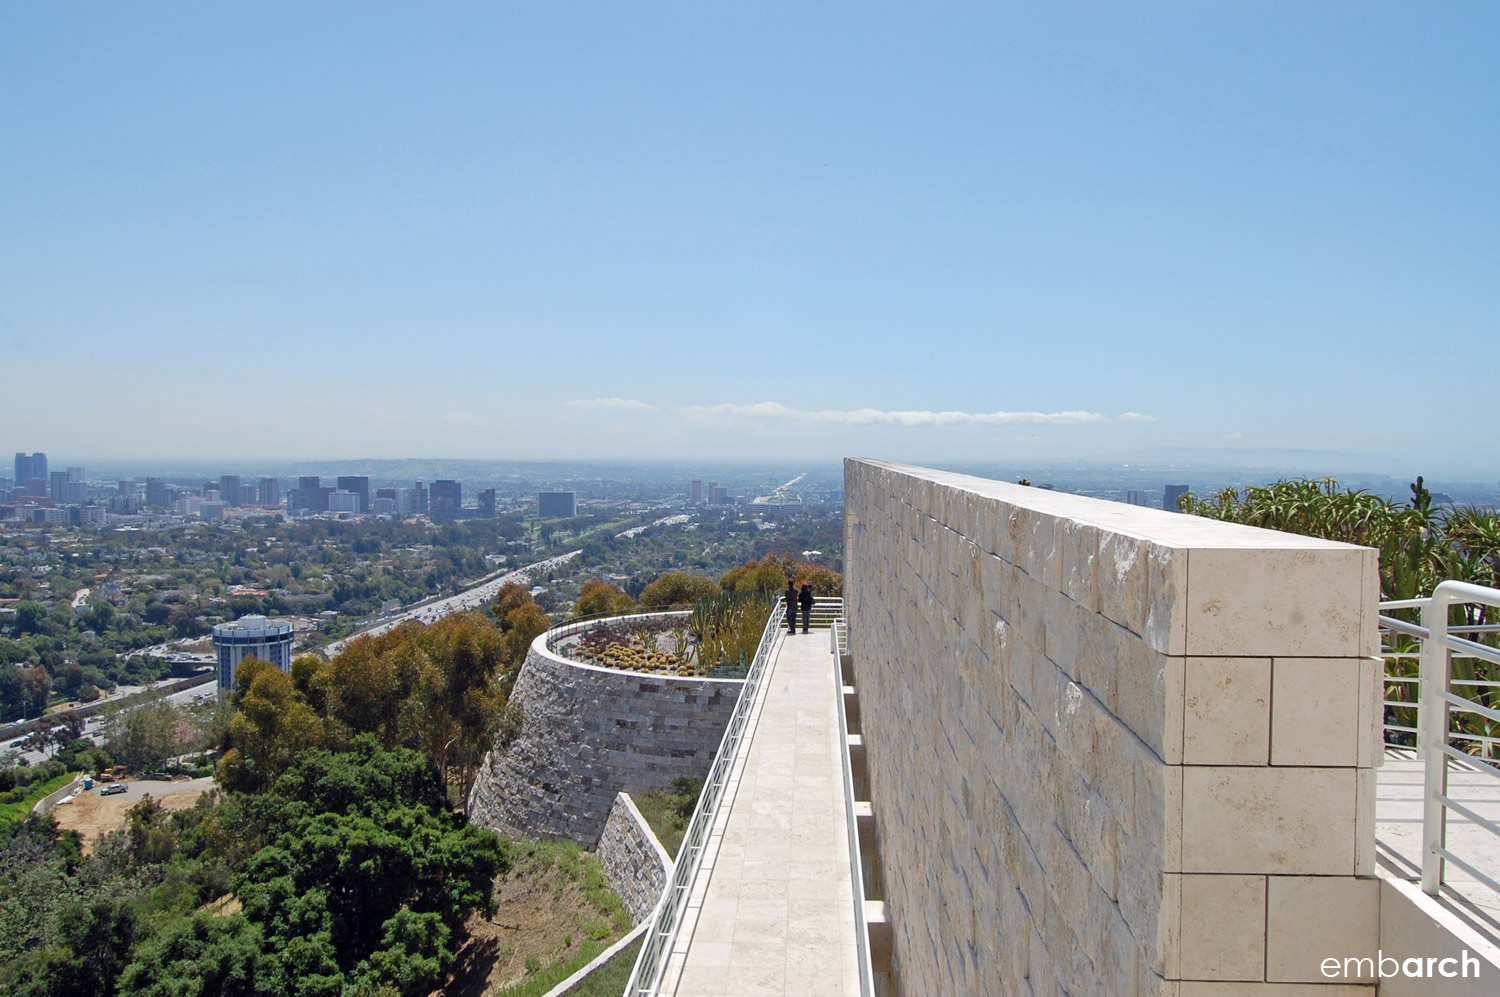 A view of Los Angeles from the Getty Center.